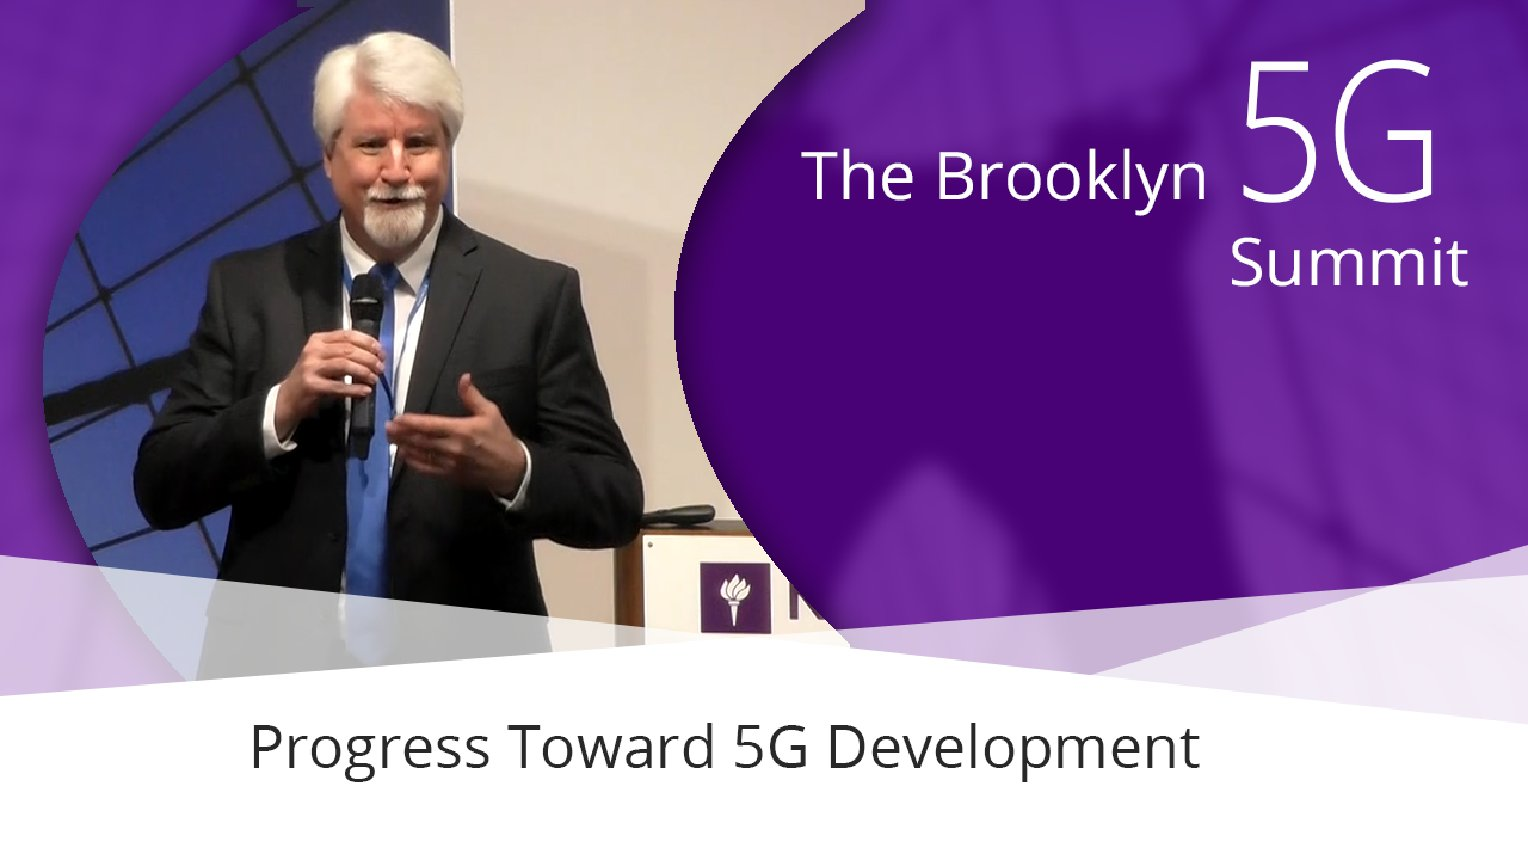 Progress Toward 5G Development - Dave Wolter: Brooklyn 5G Summit 2017